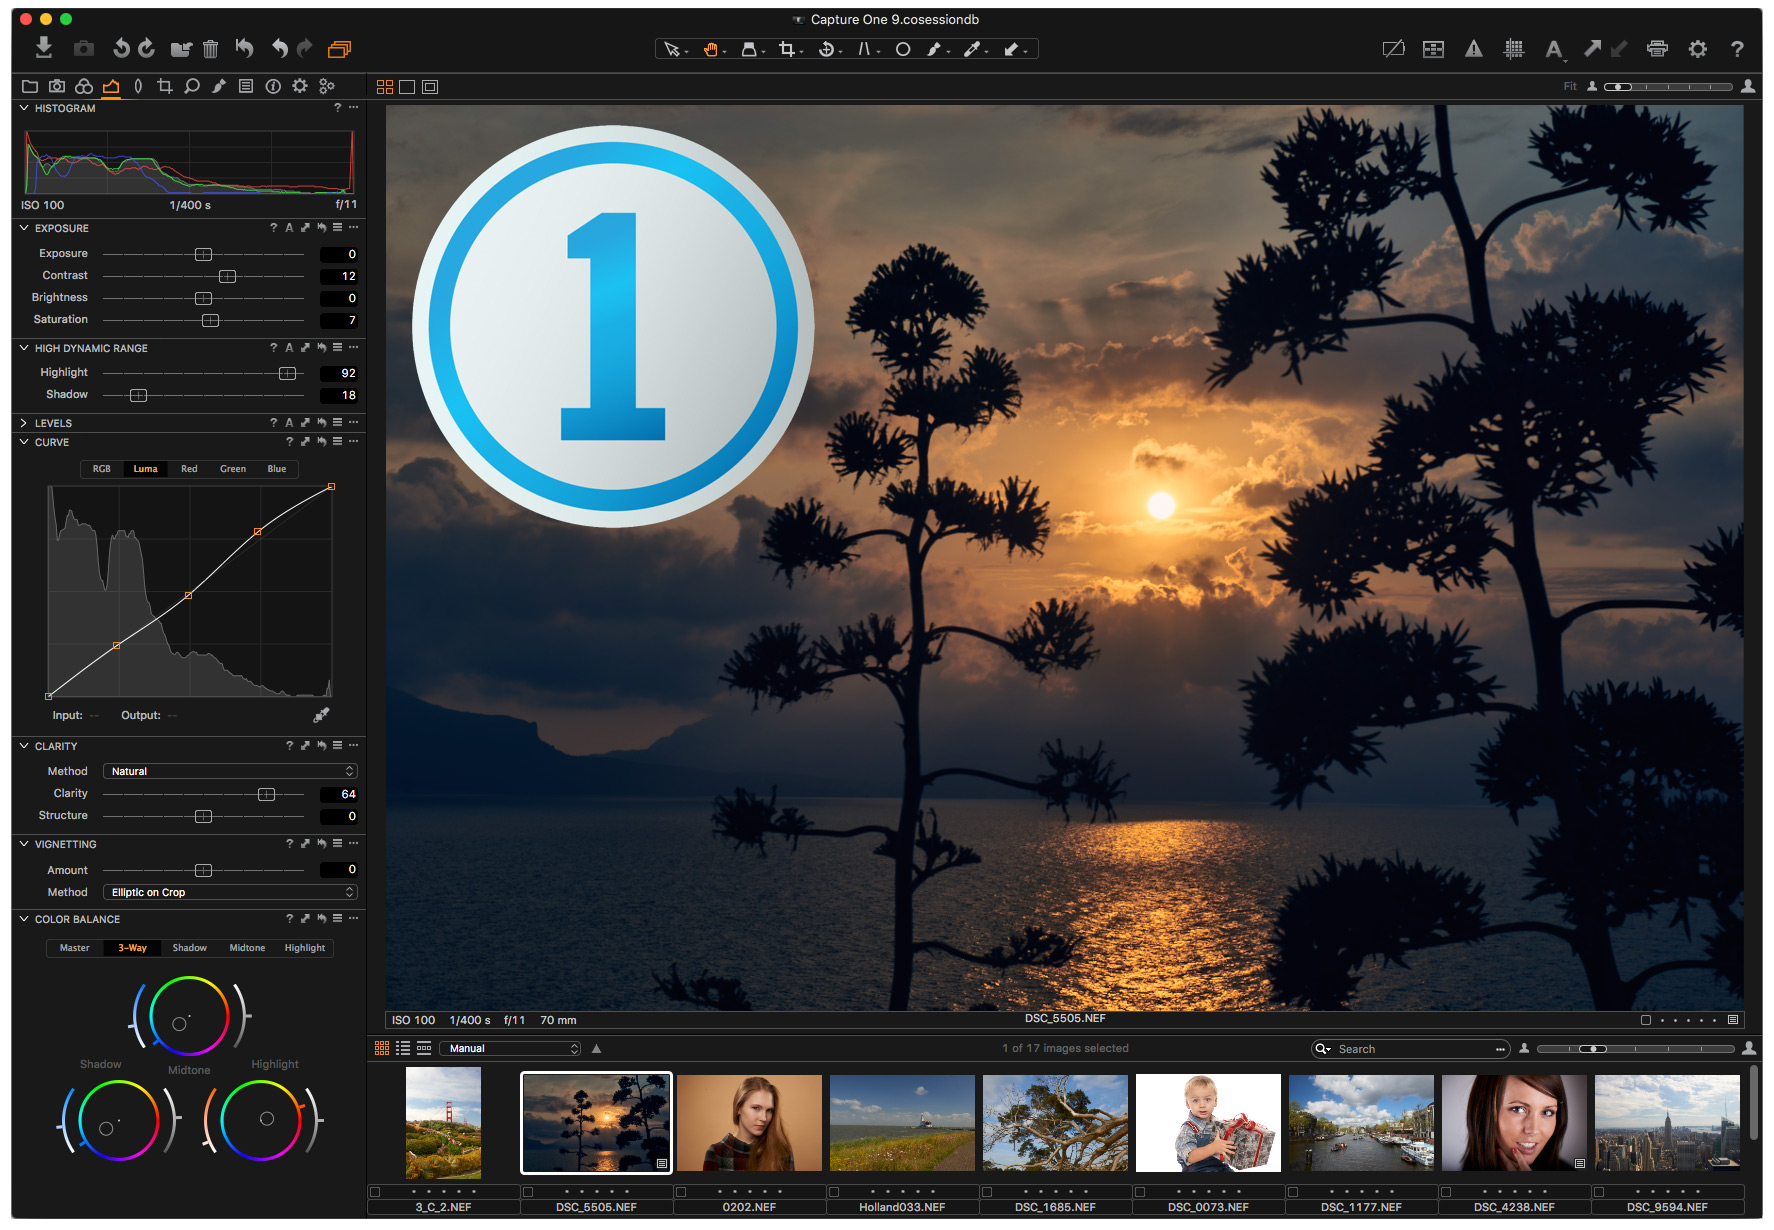 Capture-One-Pro-11.1.0.140-Crack2.jpg?re